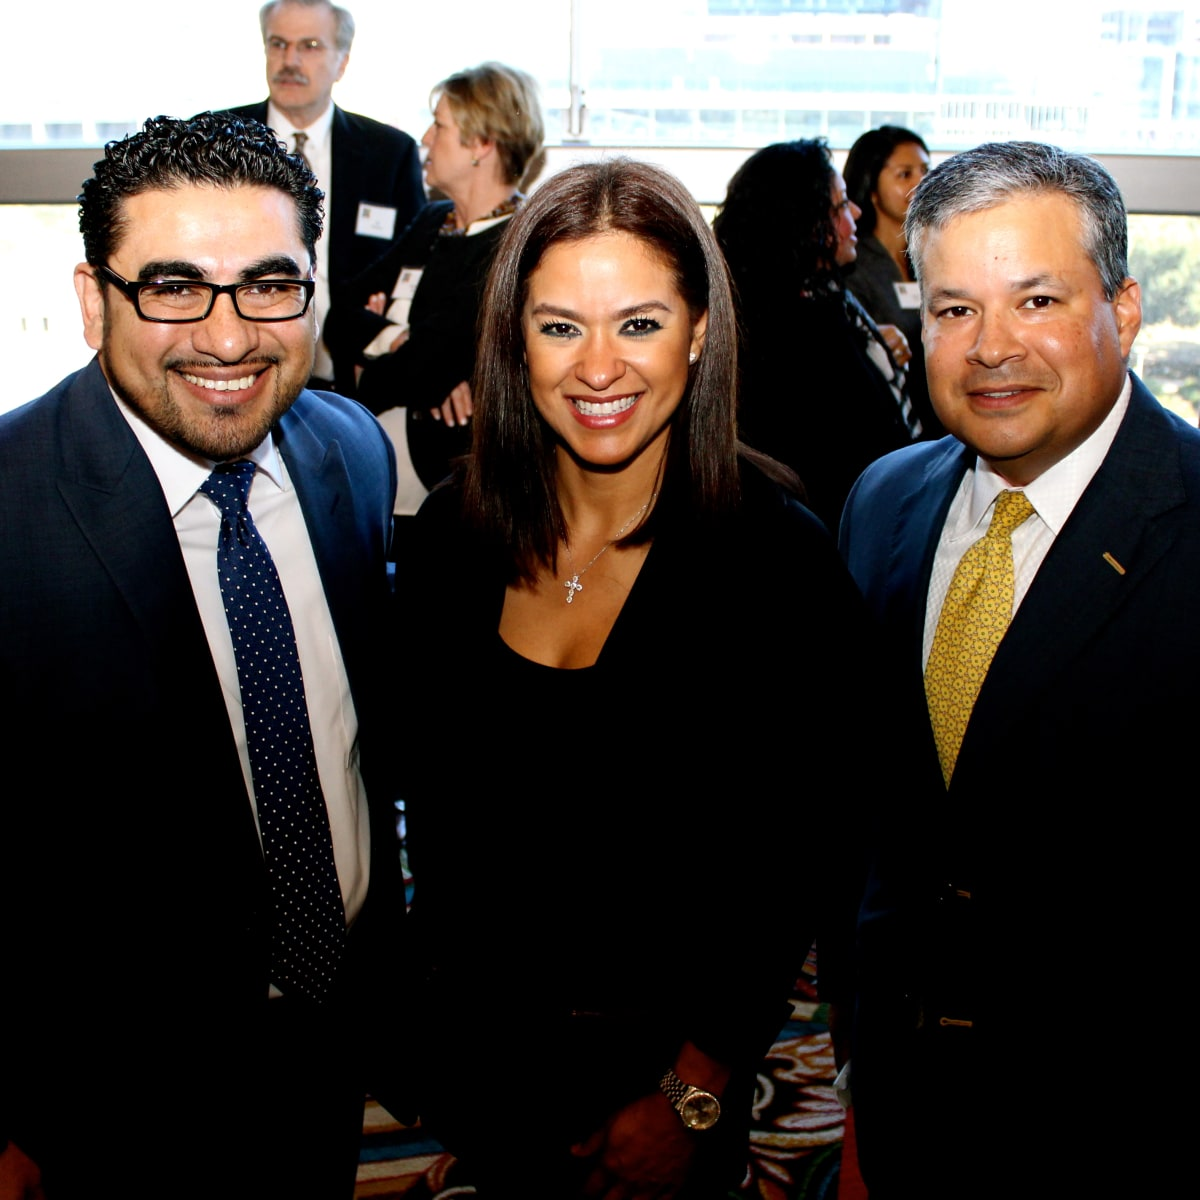 Neighborhood Centers luncheon, Feb. 2016, Armando Walle, Oriana Garcia, David Vasquez